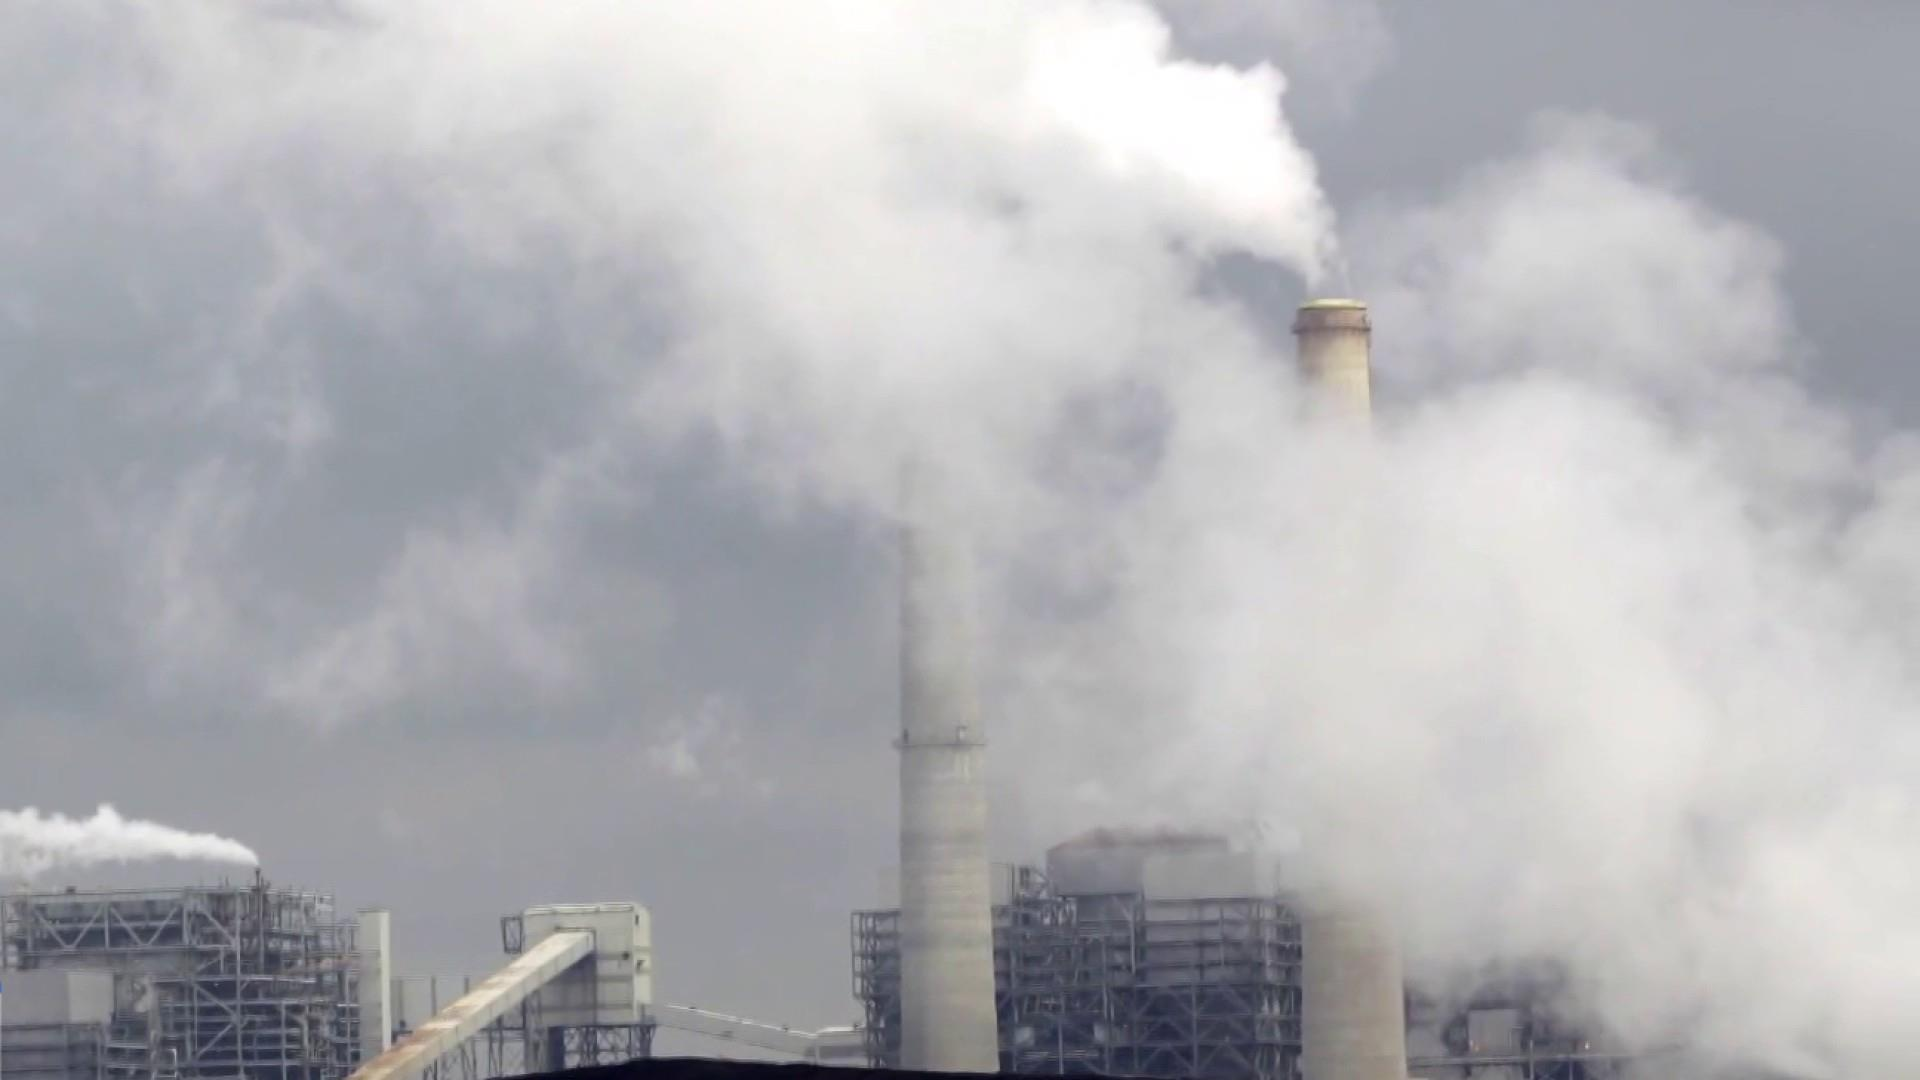 Bloomberg pledges $500 million to help eliminate coal